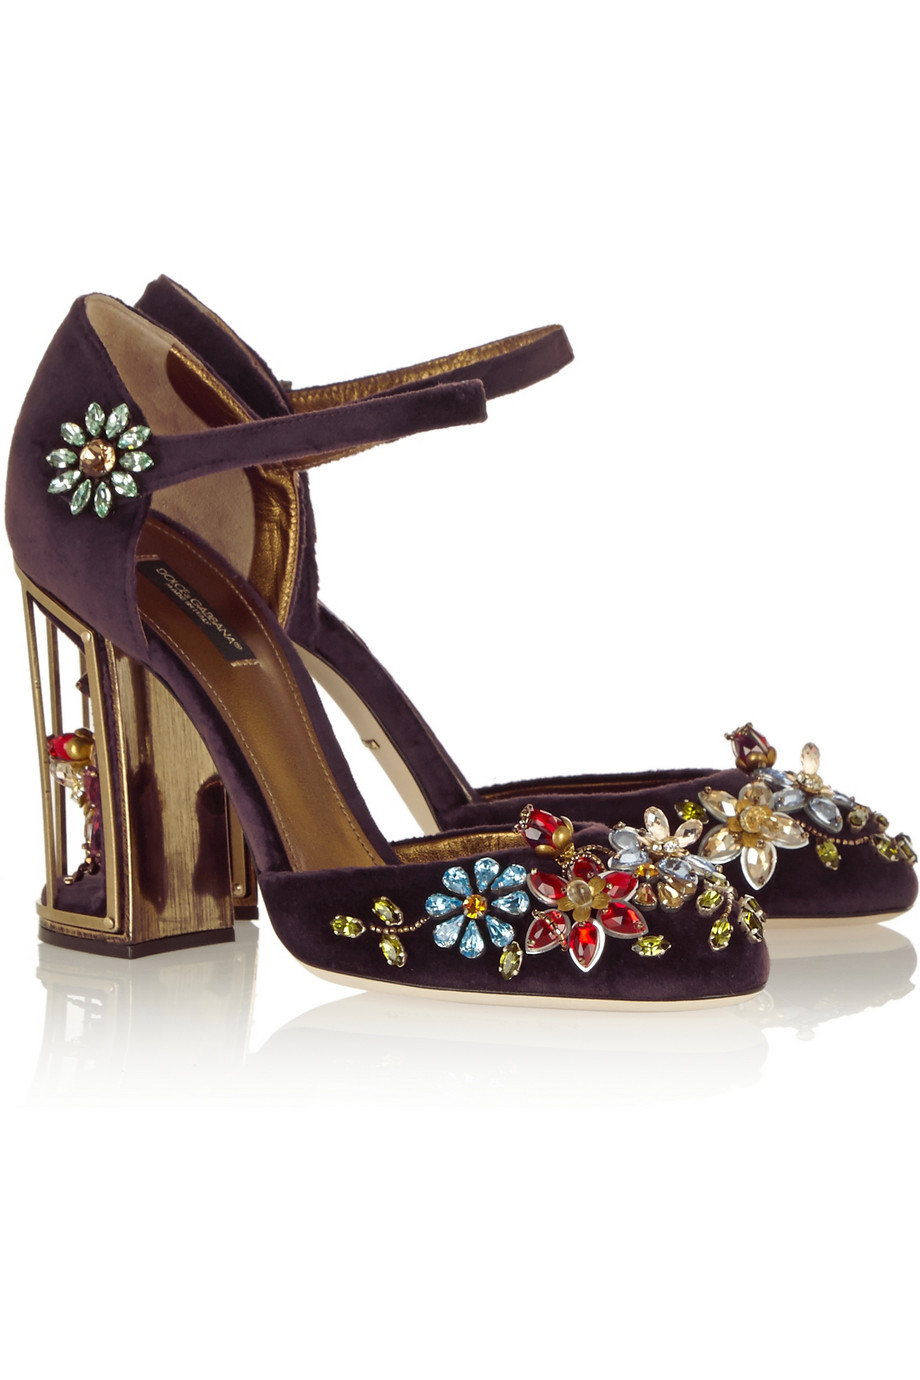 outlet 2015 new Dolce & Gabbana crystal embellished velvet Mary Janes cheap sale Inexpensive footlocker pictures for sale sale extremely K5KP5v